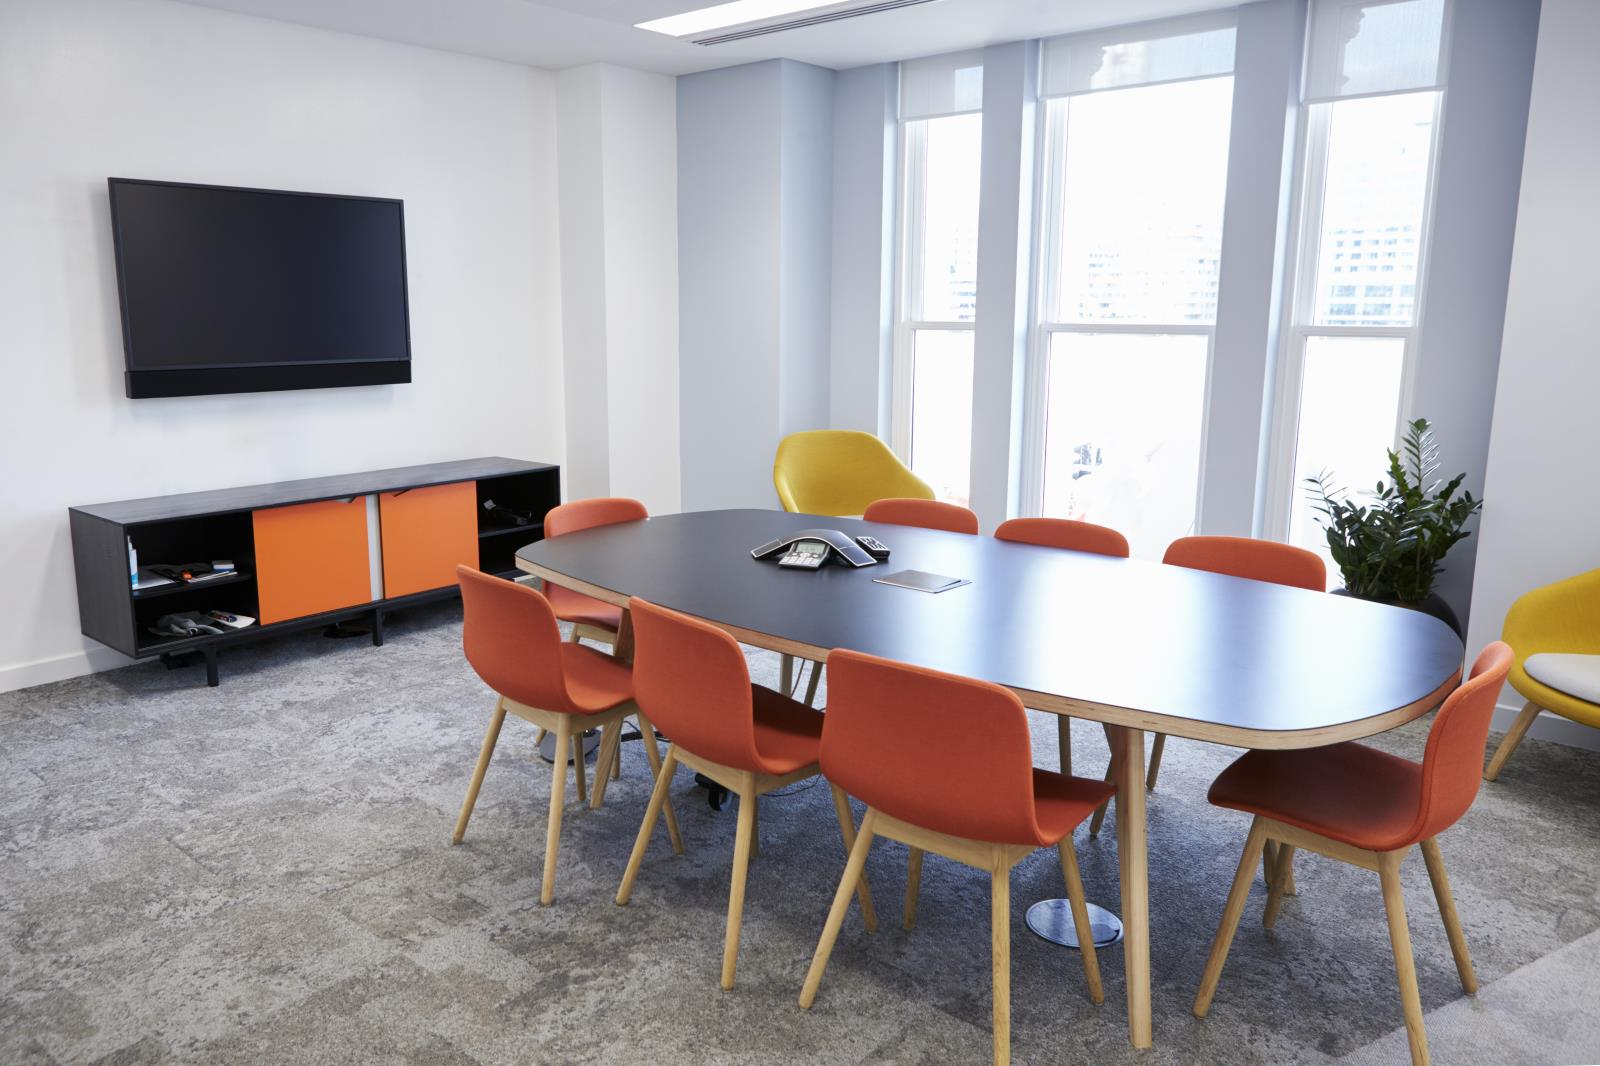 empty_boardroom_at_a_modern_business_premises_PDGBSU5.jpg